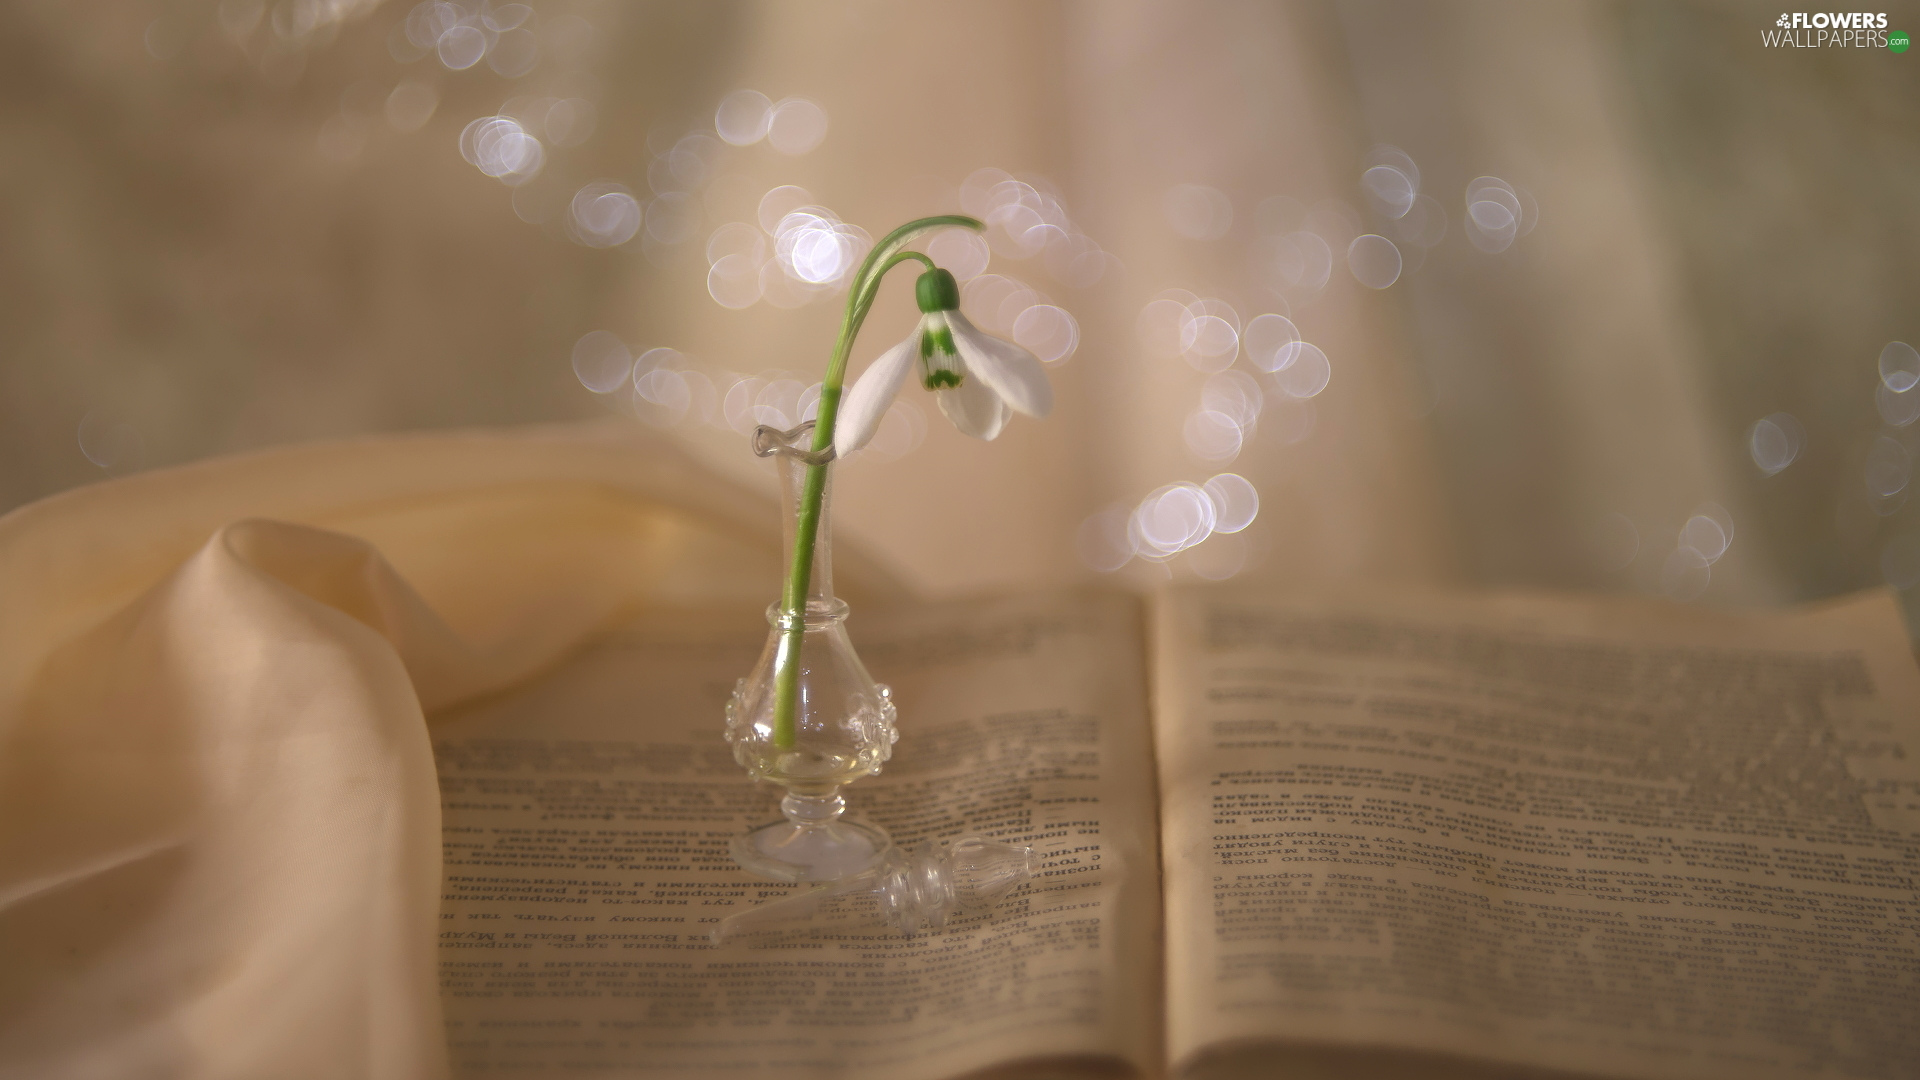 vase, Snowdrop, Book, glass, open